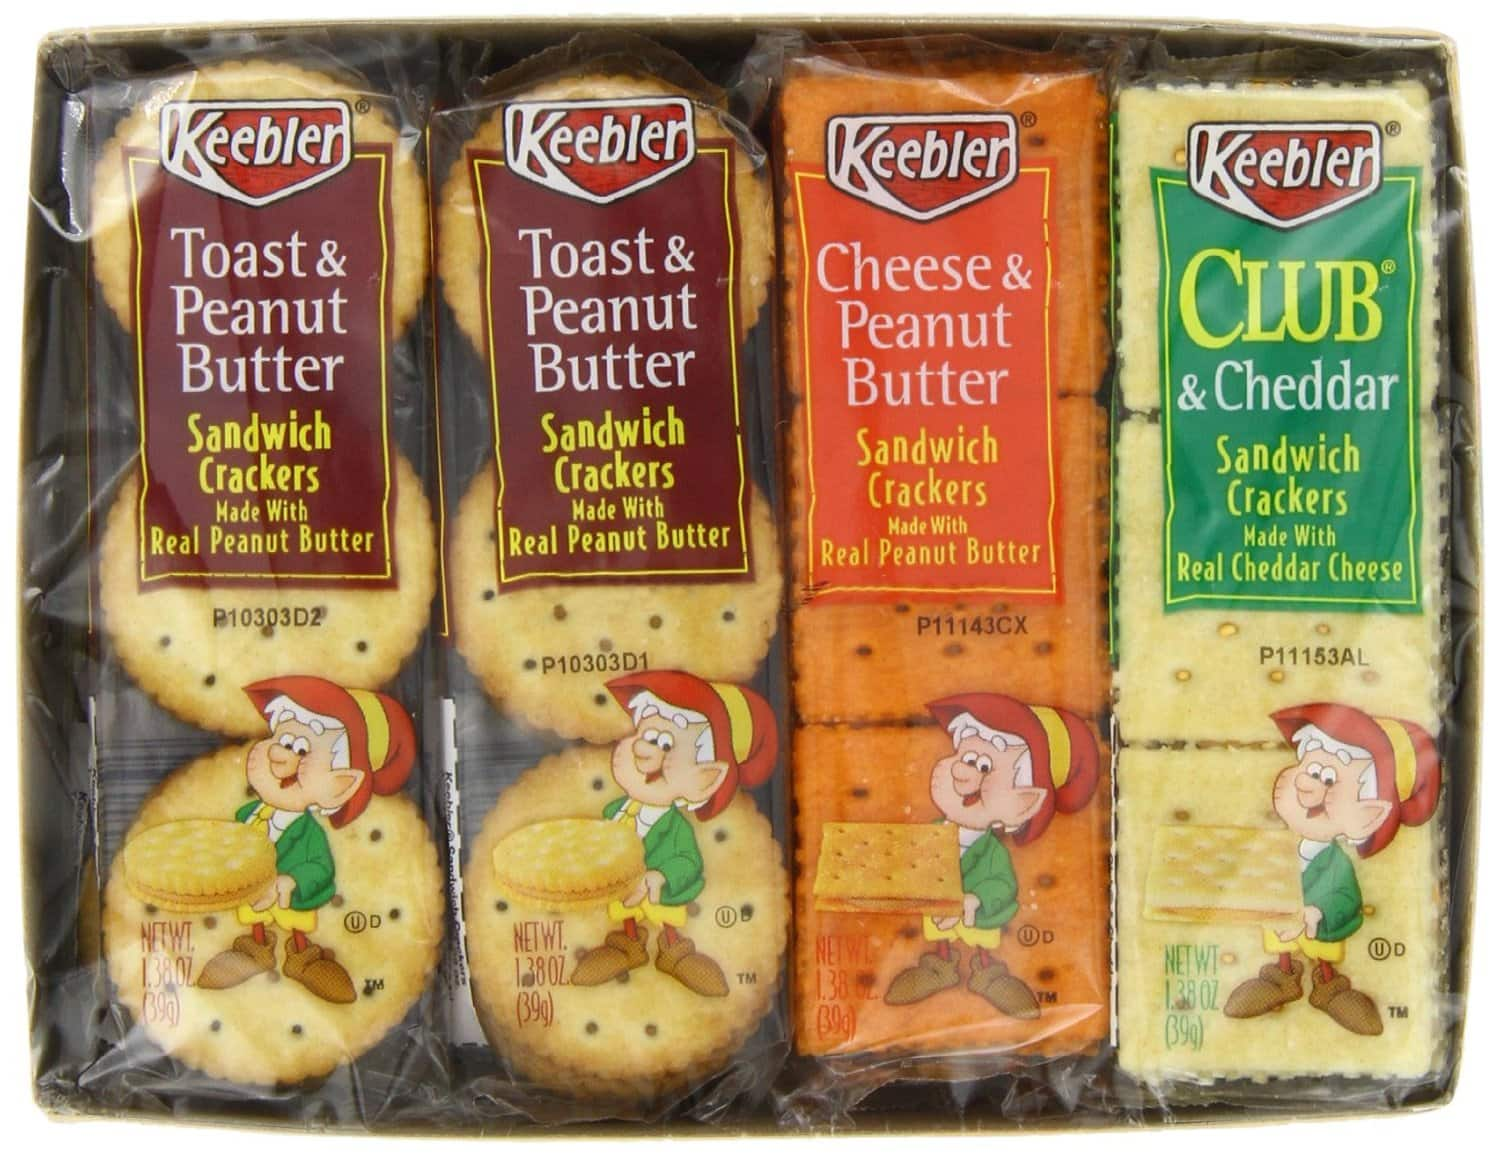 36-Pack Cheez-it Crackers $12, 6-Pack of 8-Ct Keebler Sandwich Crackers  $10.50 & More + Free Shipping